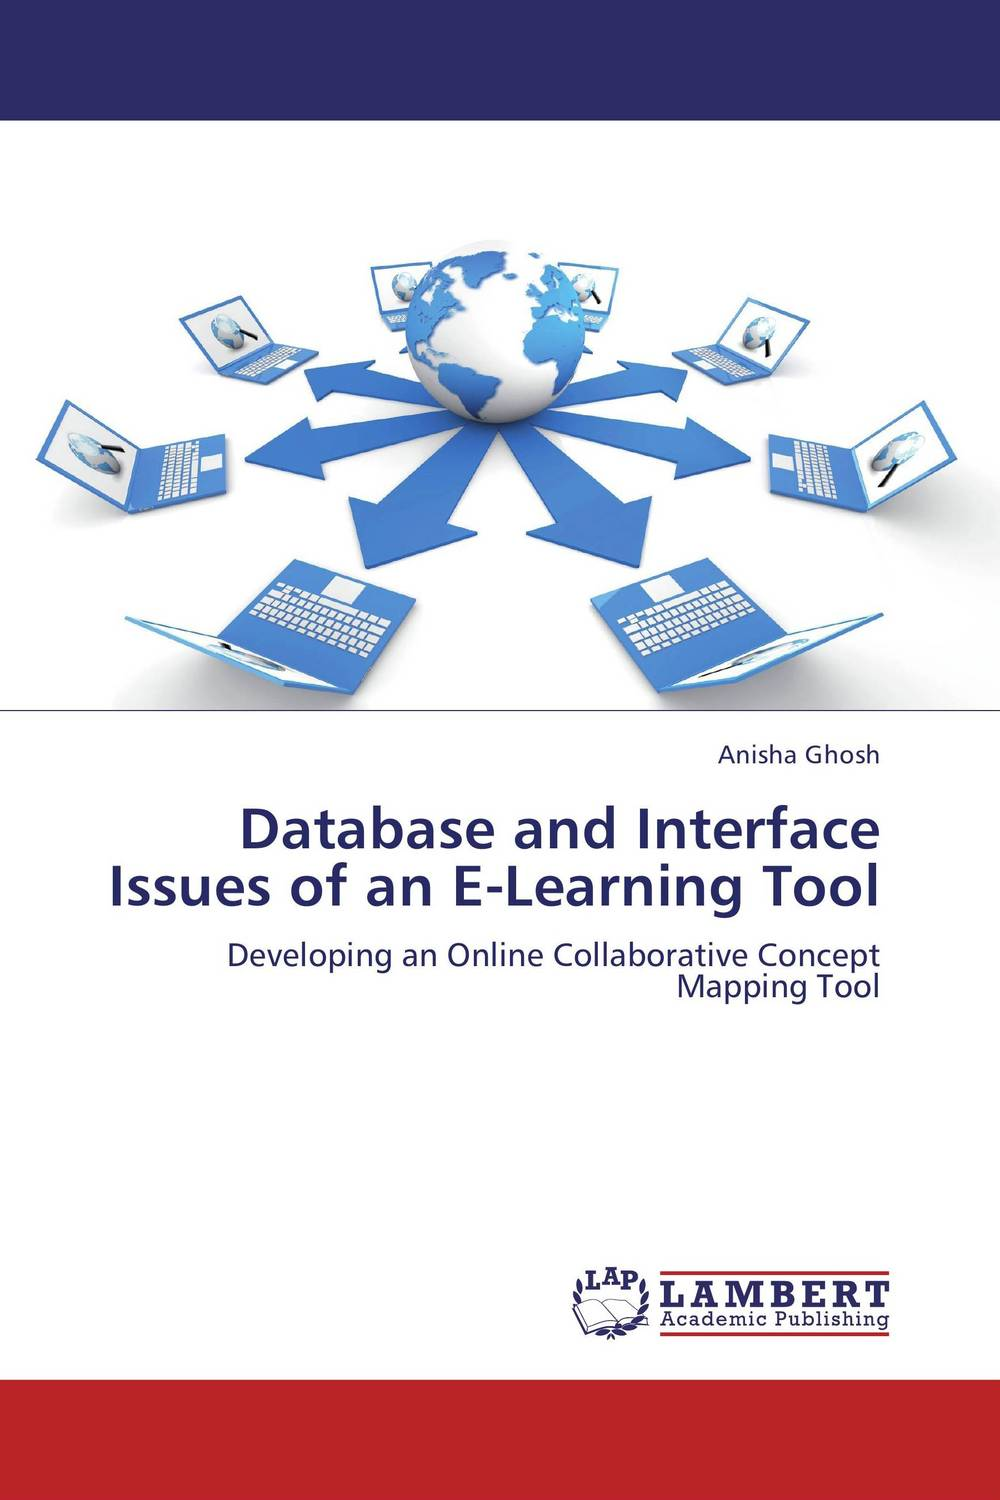 Database and Interface Issues of an E-Learning Tool environment science issues solutions